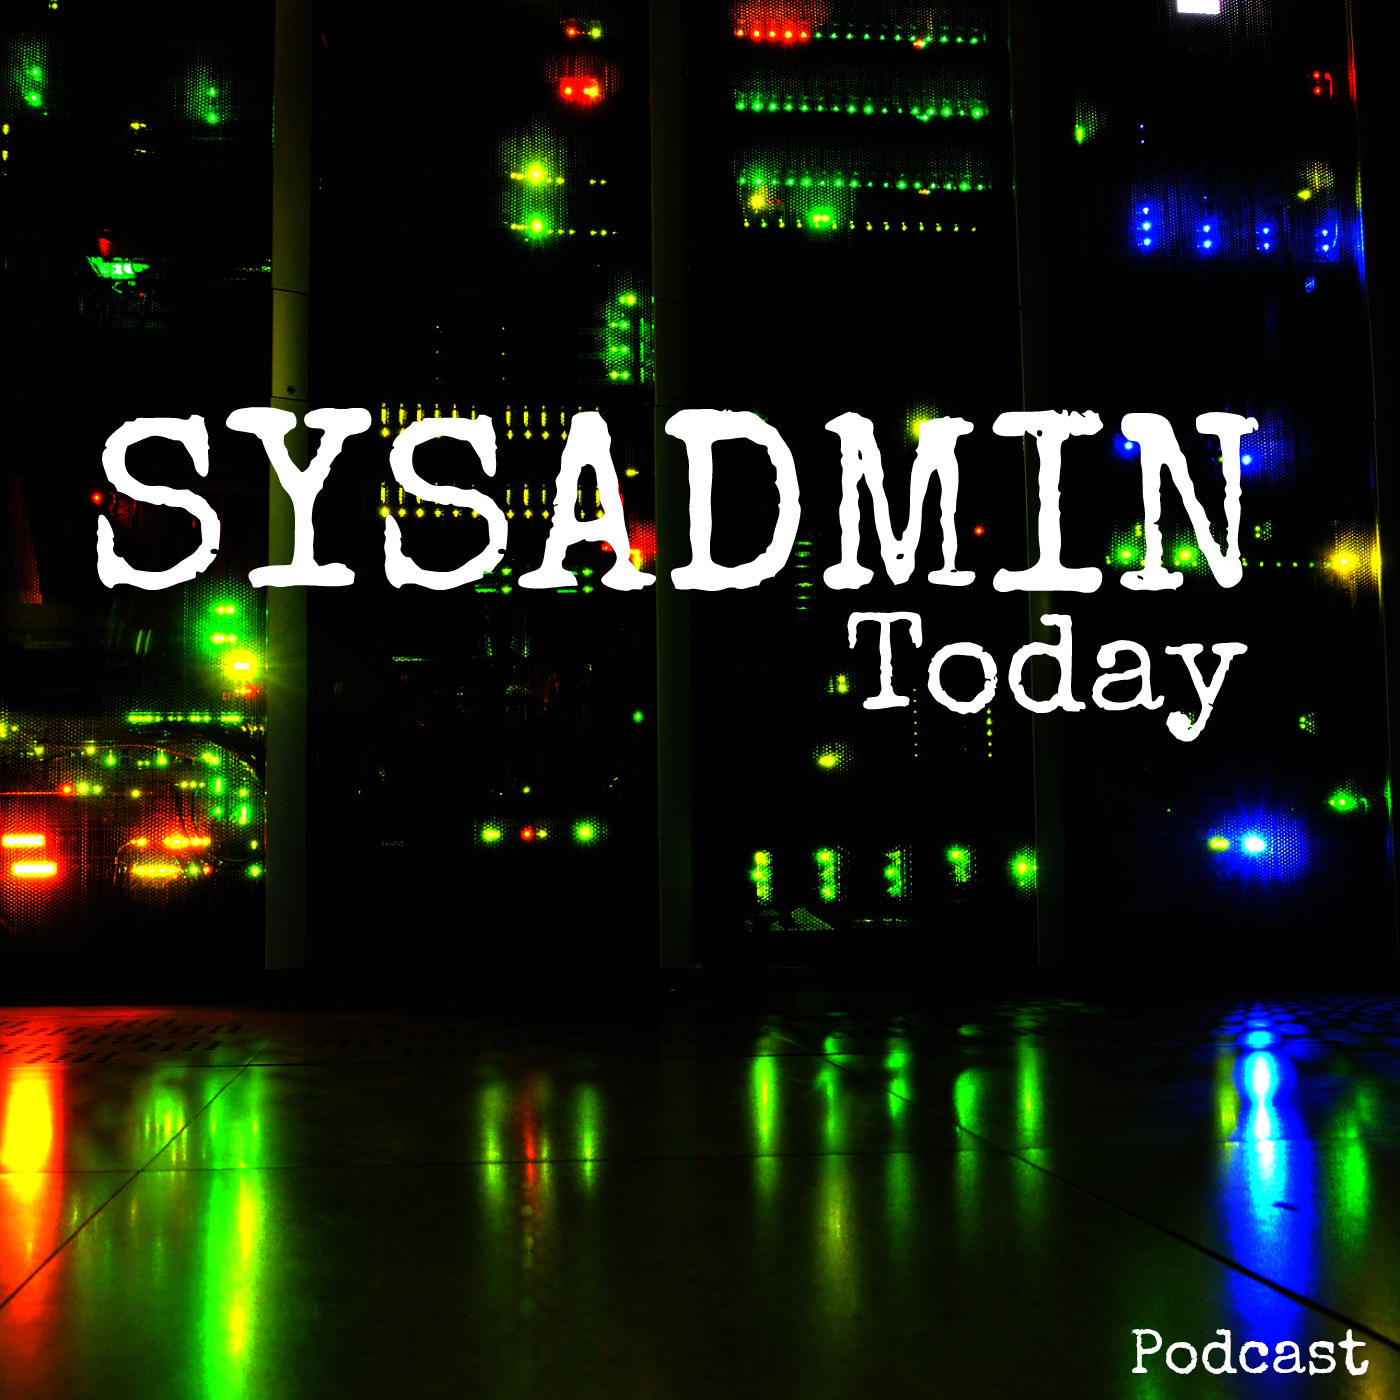 Sysadmin Today Podcast show art